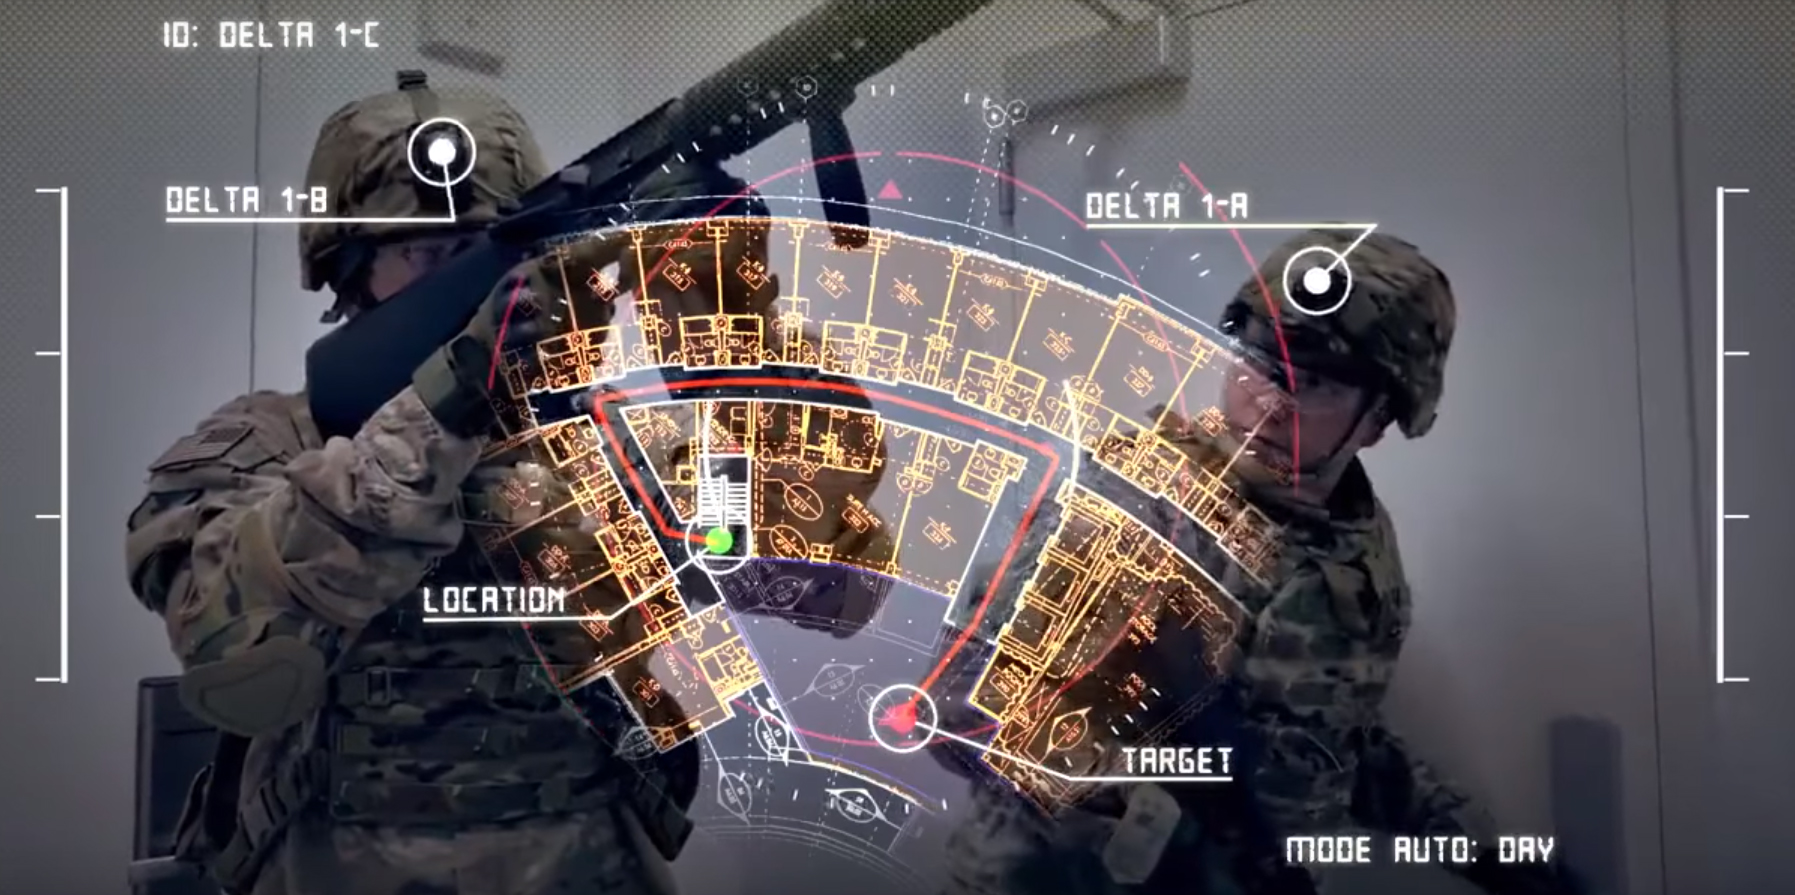 Augmented Reality with precise GPS technology